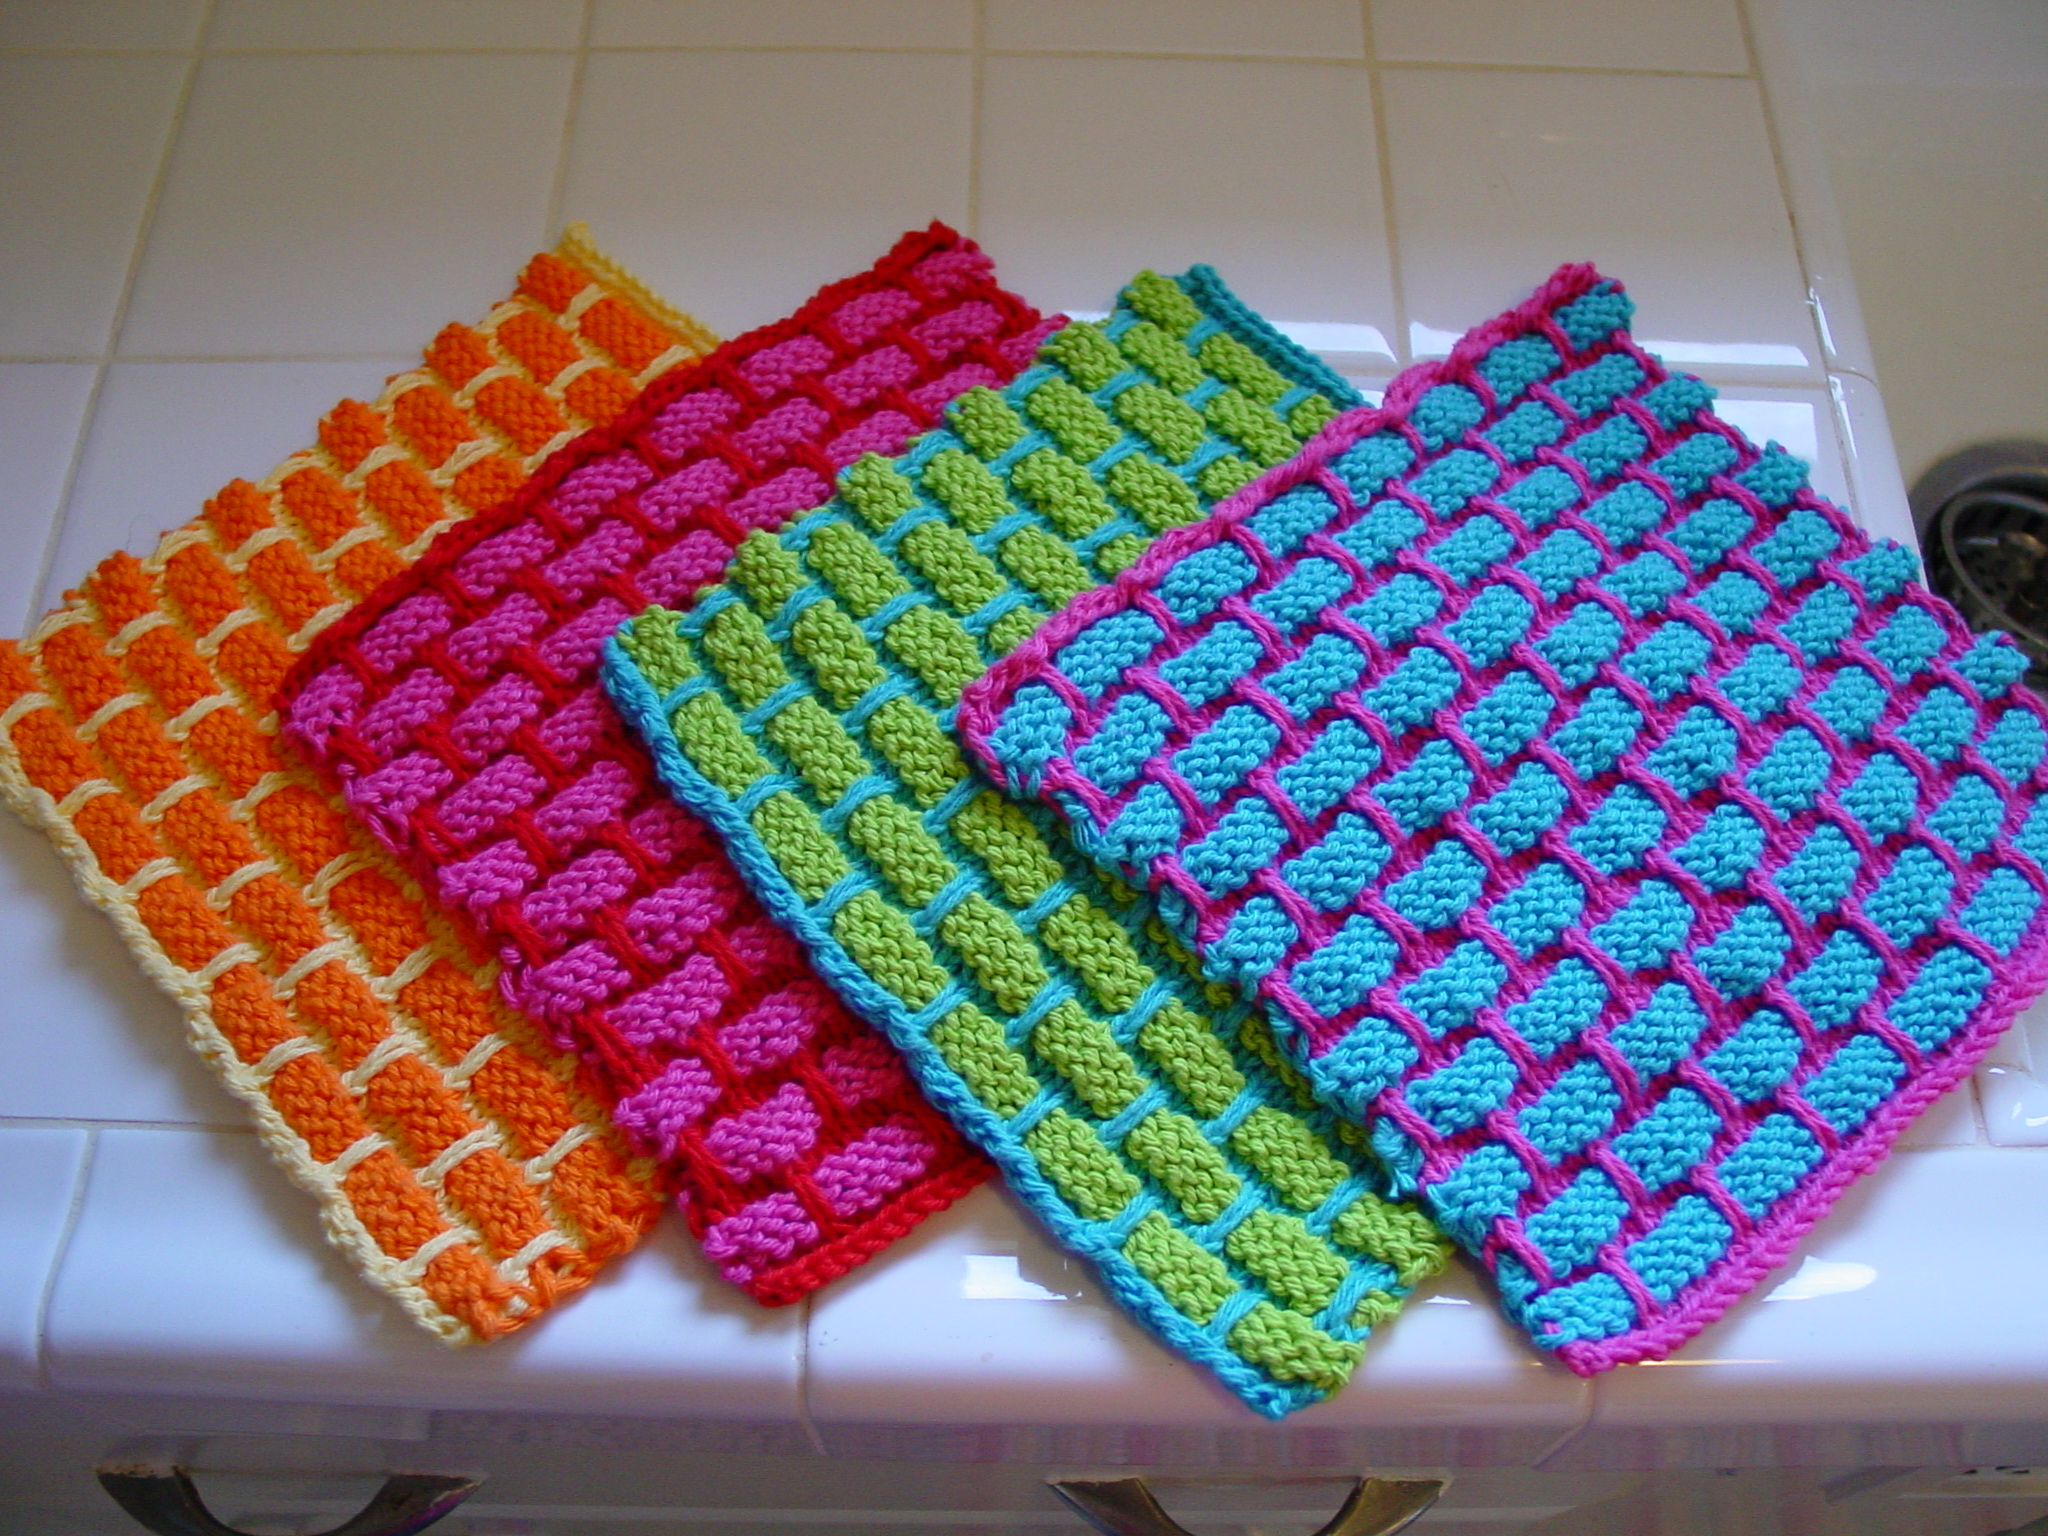 File:Dishcloths.jpg - Wikimedia Commons